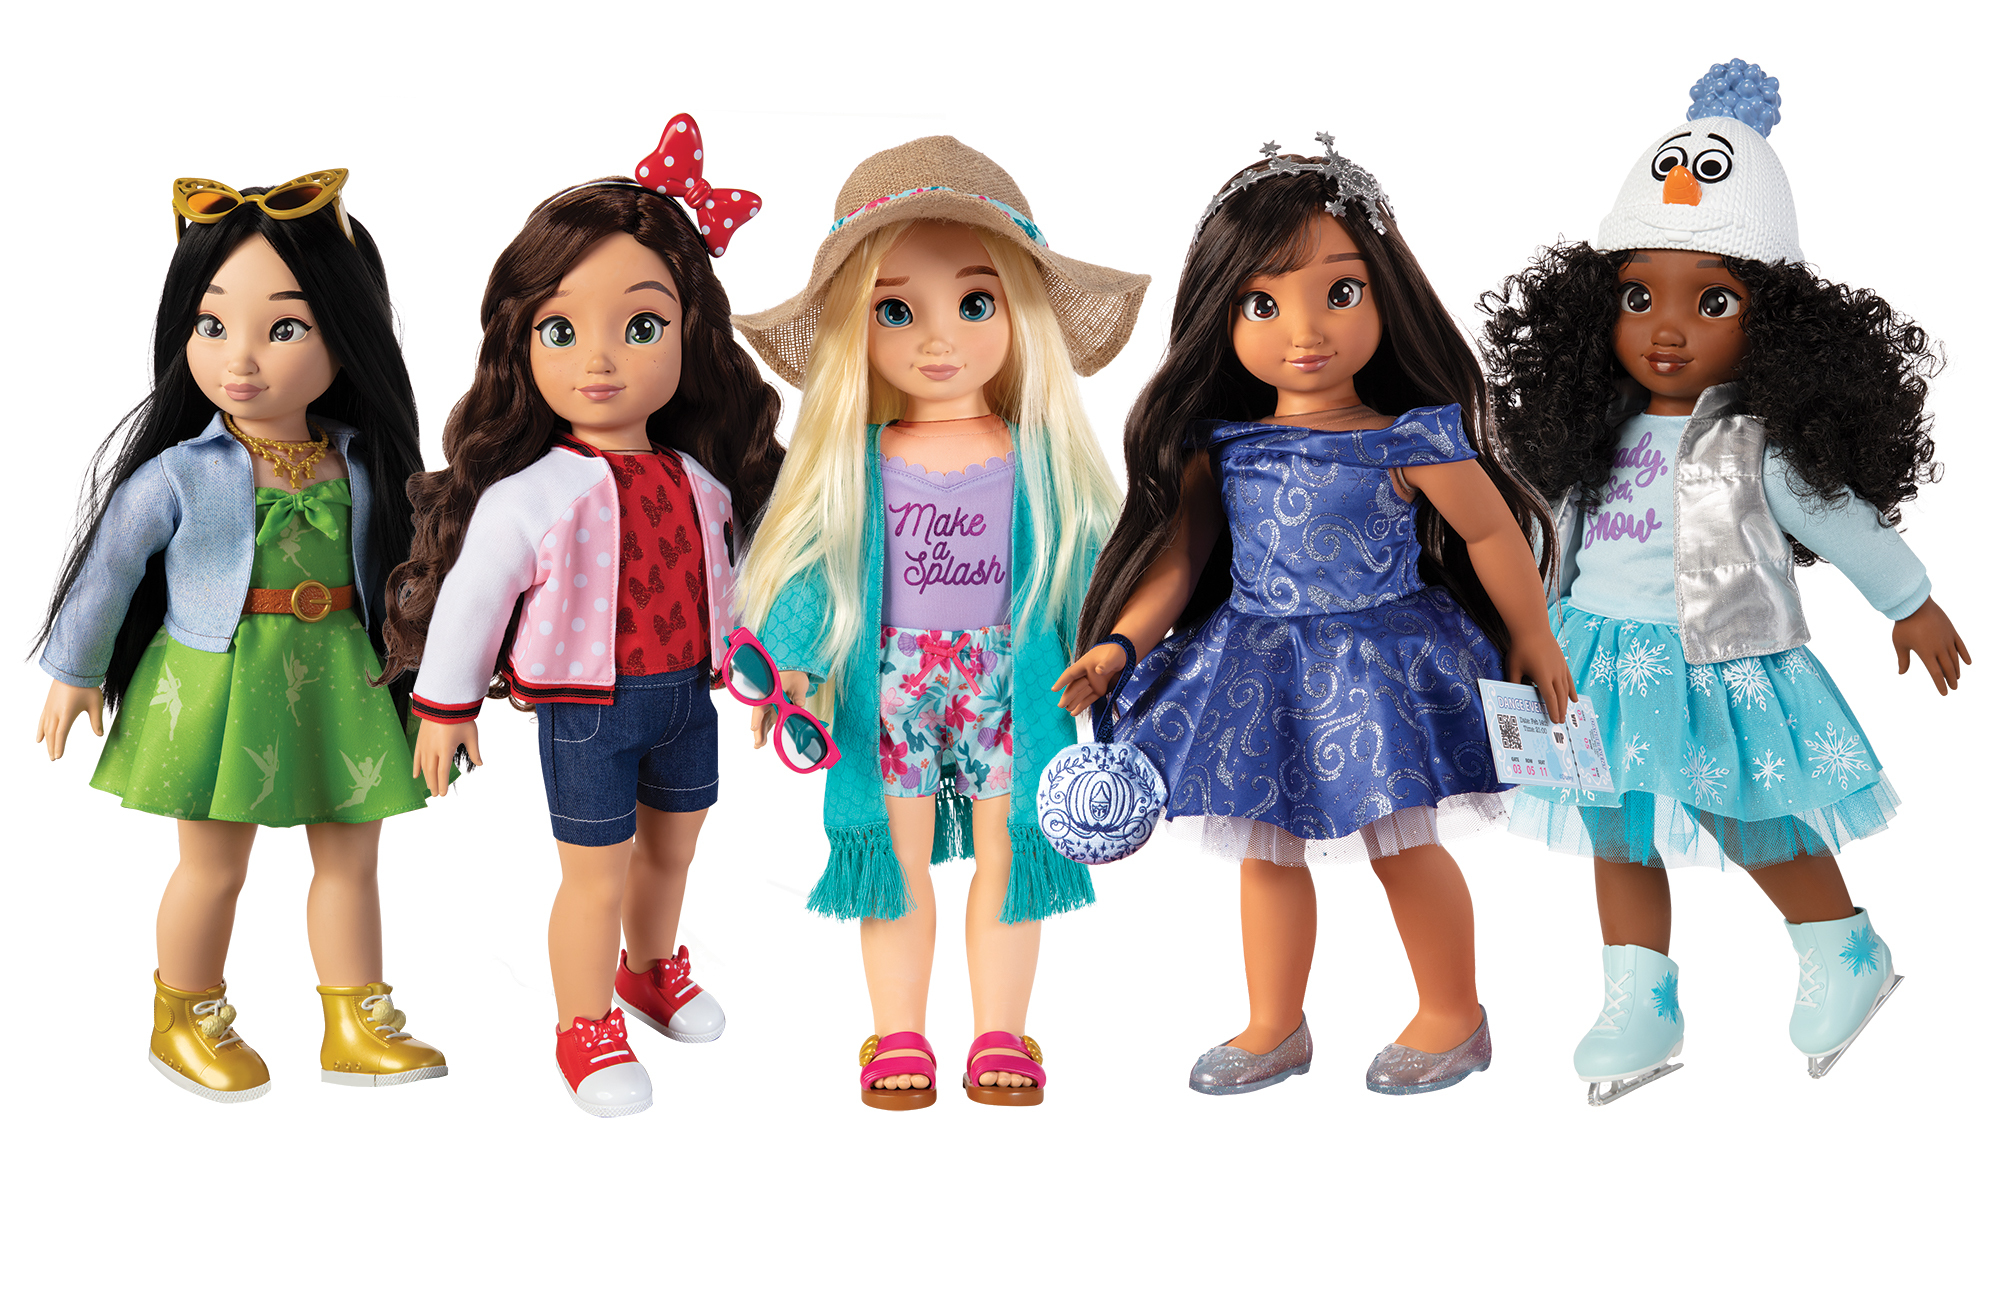 """JAKKS Pacific Launches New """"Disney ily 4EVER"""" Fashion Doll Line to Inspire  Self-Expression Through Style 